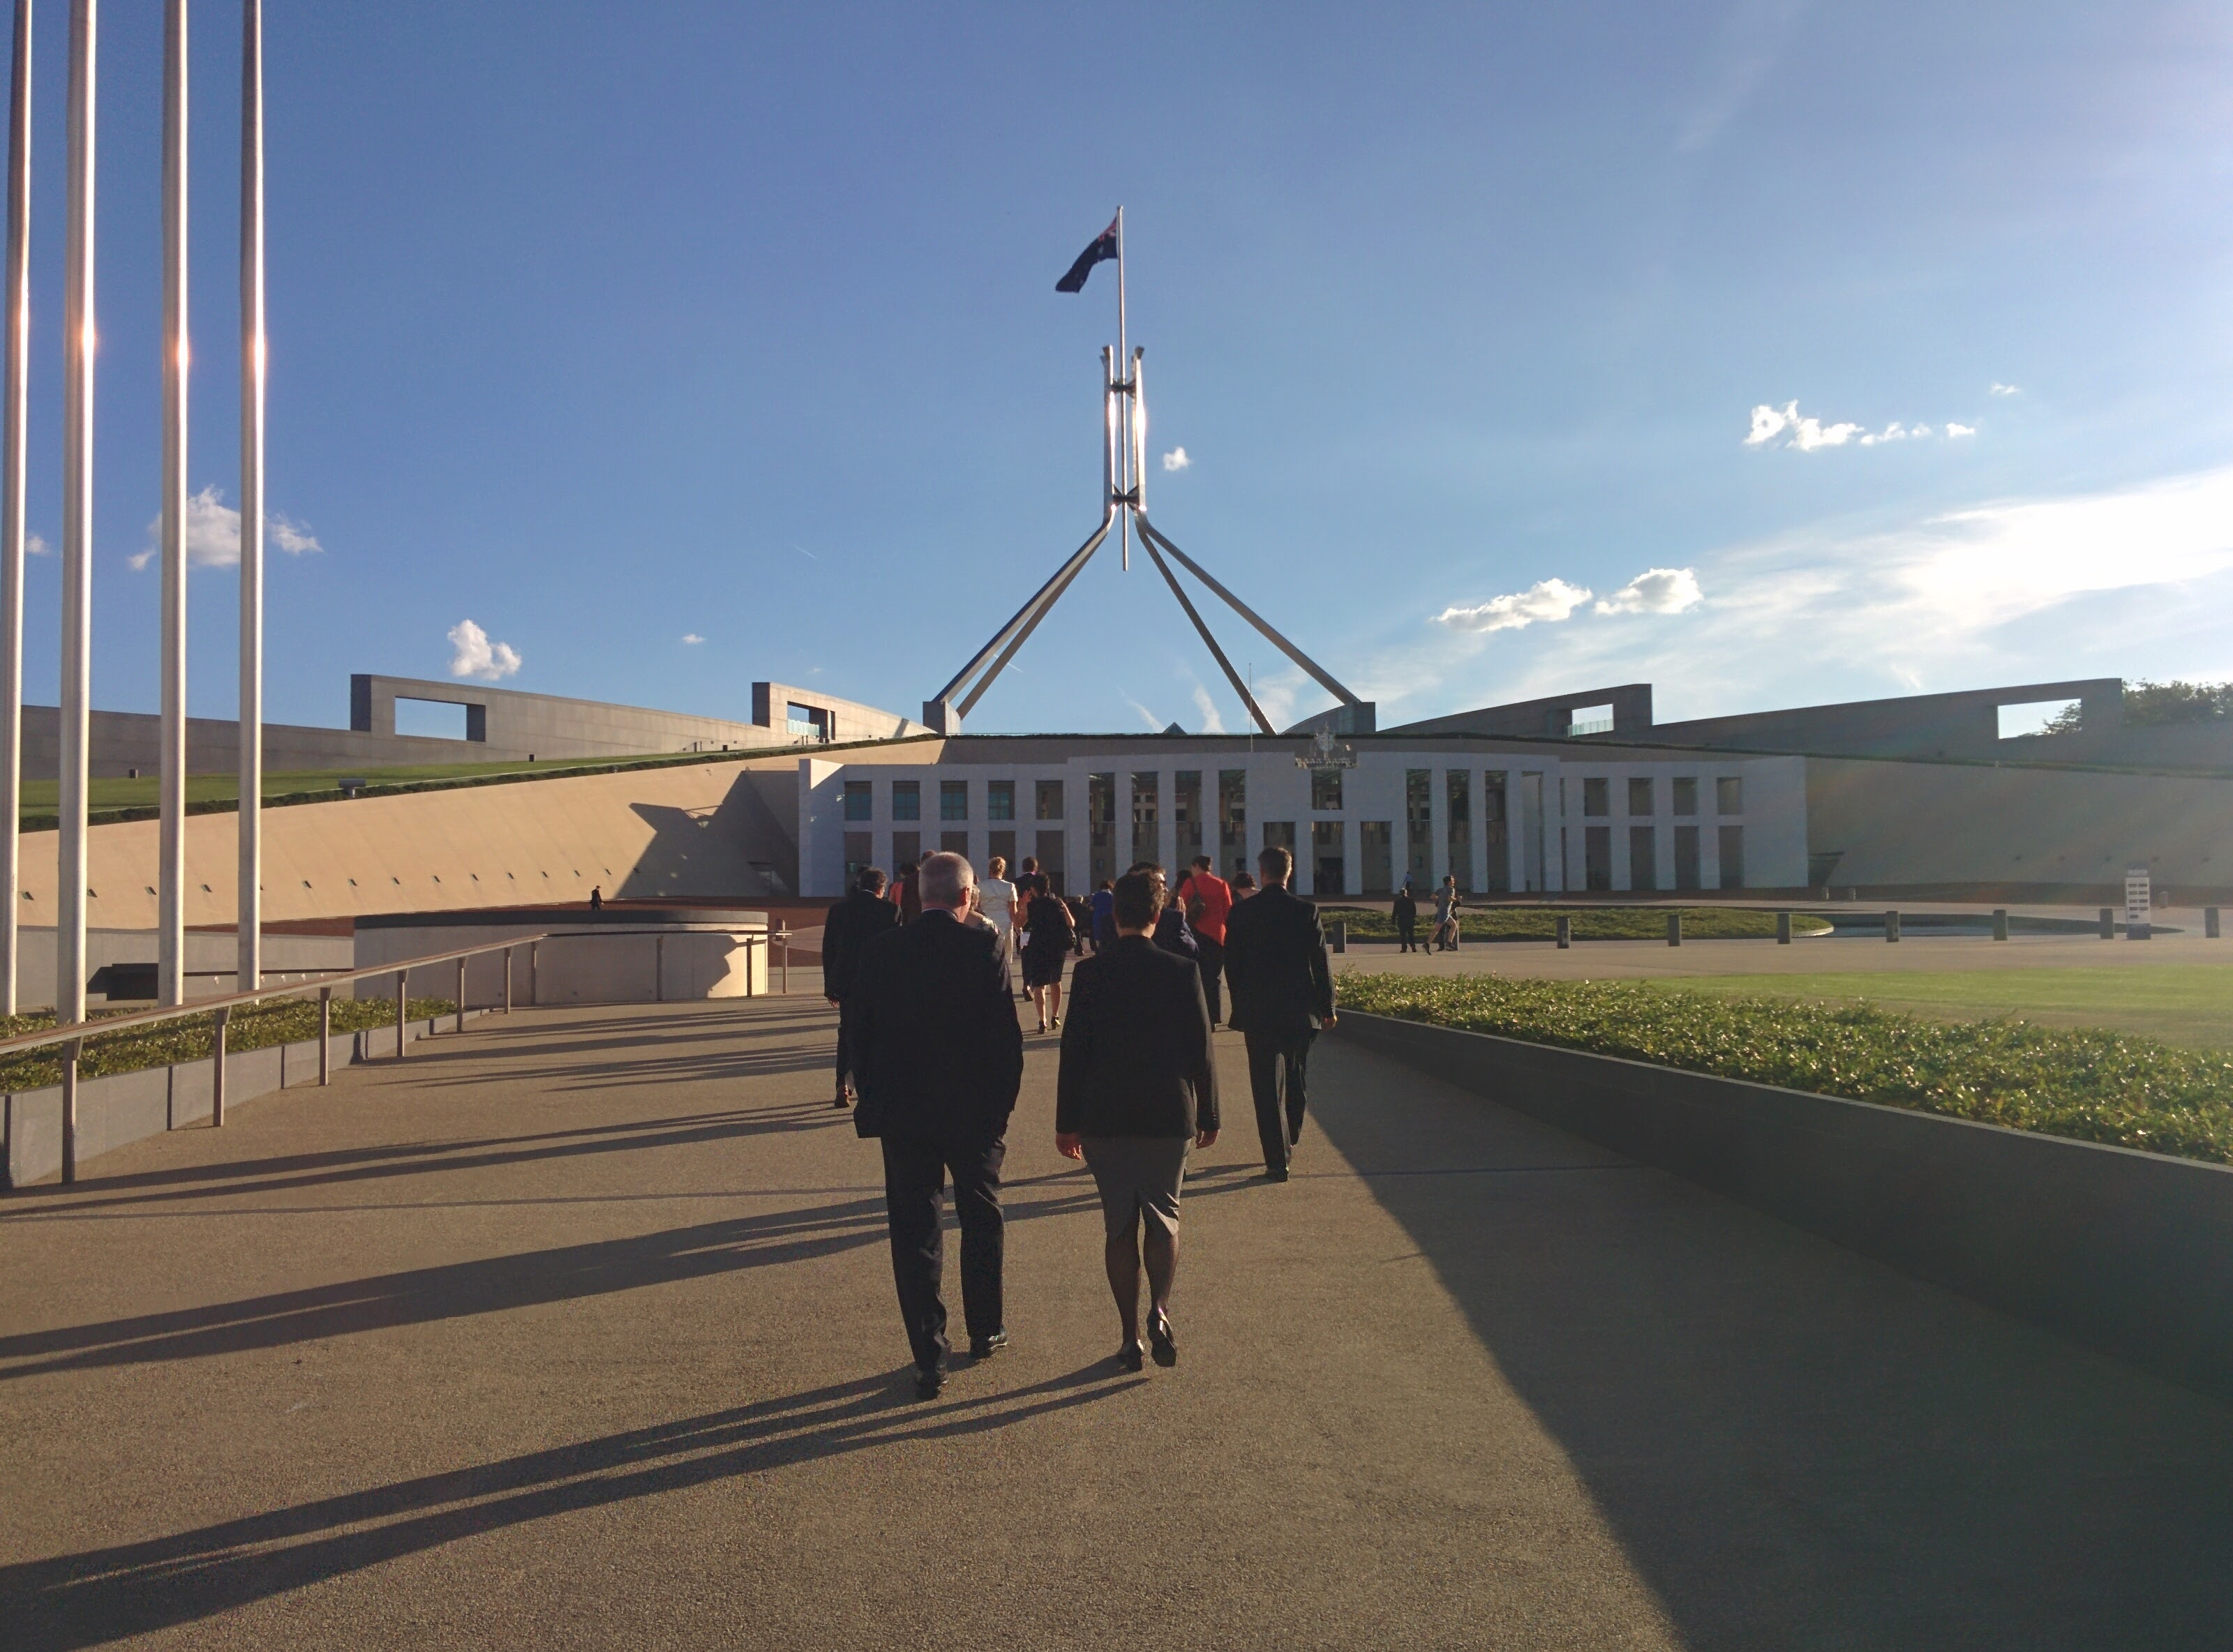 Scientists make their way to Parliament